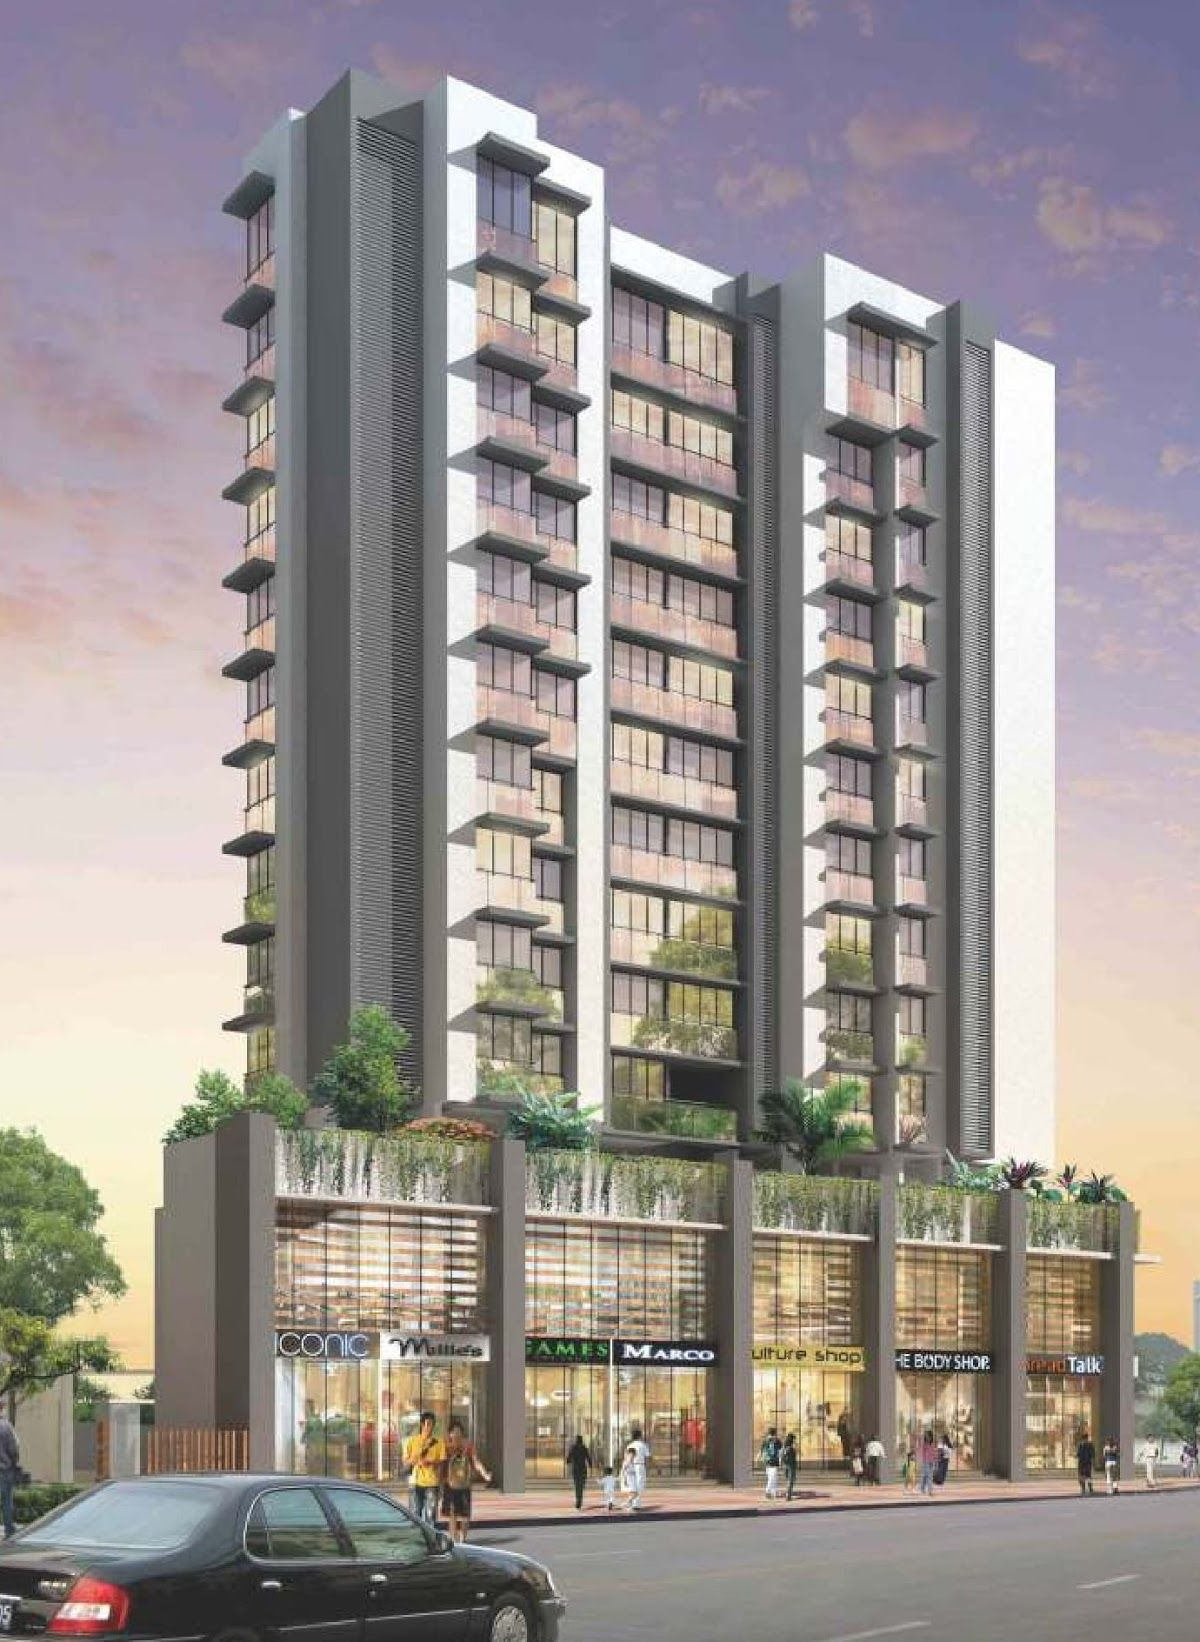 Kabra Ajanta By Kabra Group At Santacruz, Mumbai in 2020